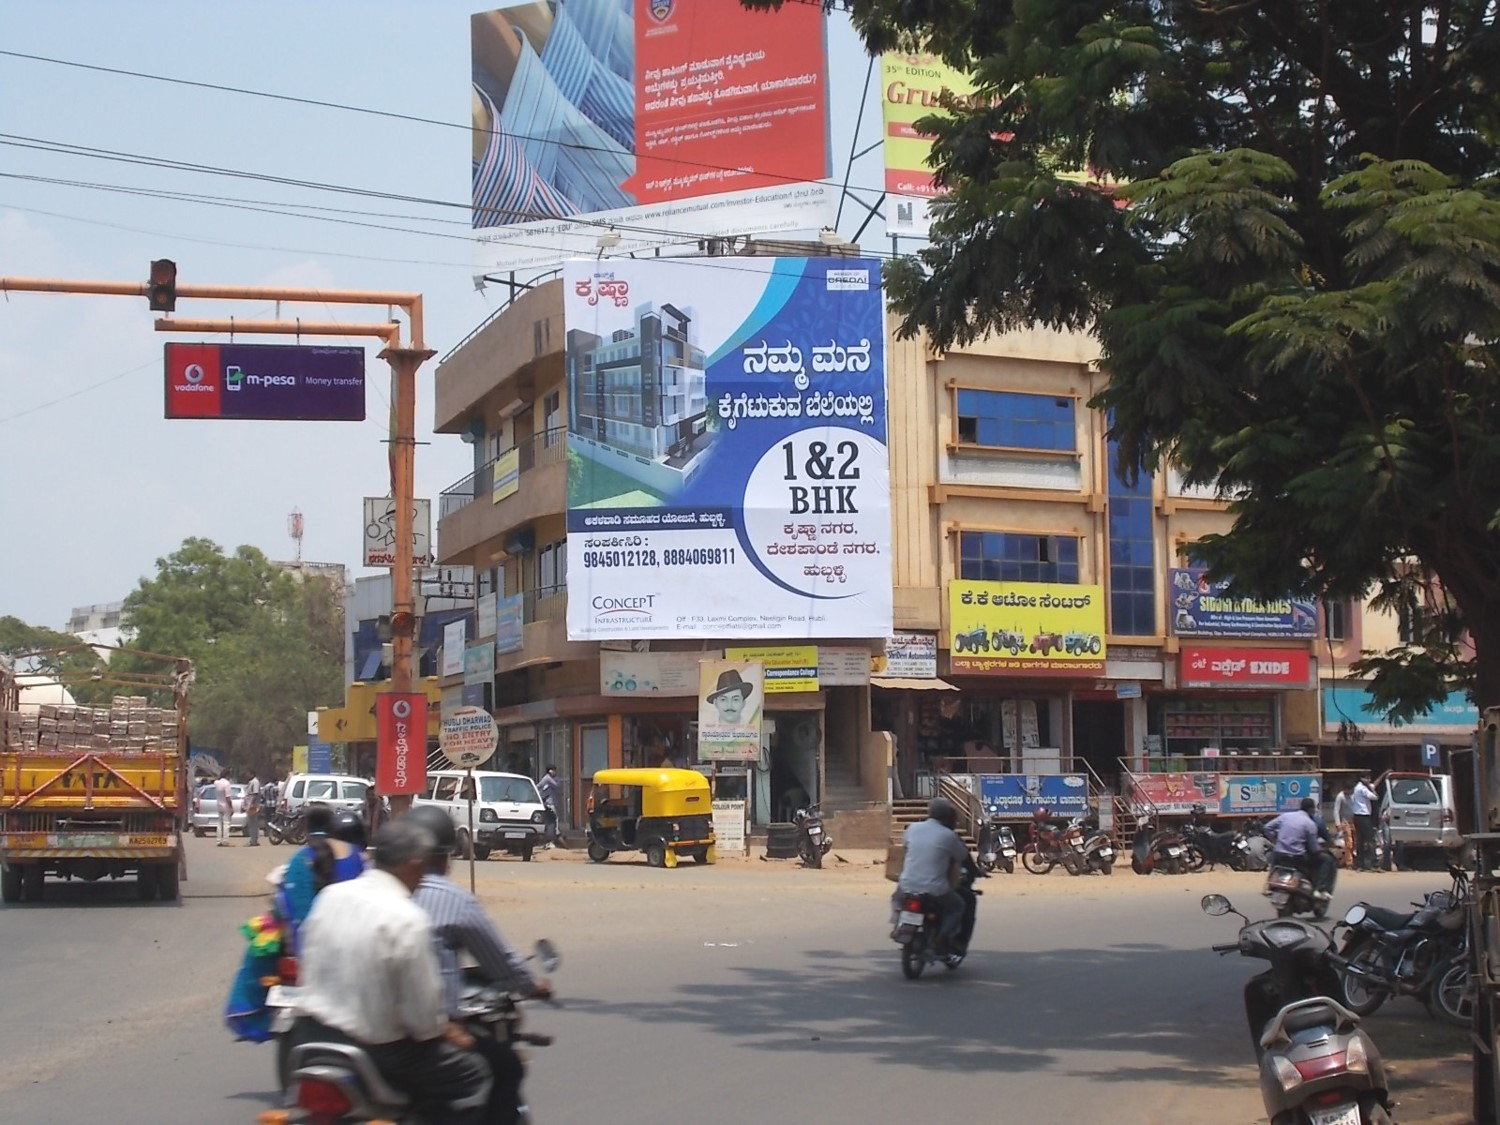 BHAGAT SING CIRCLE TOWARDS CHENAMMA CIRCLE, HUBLI